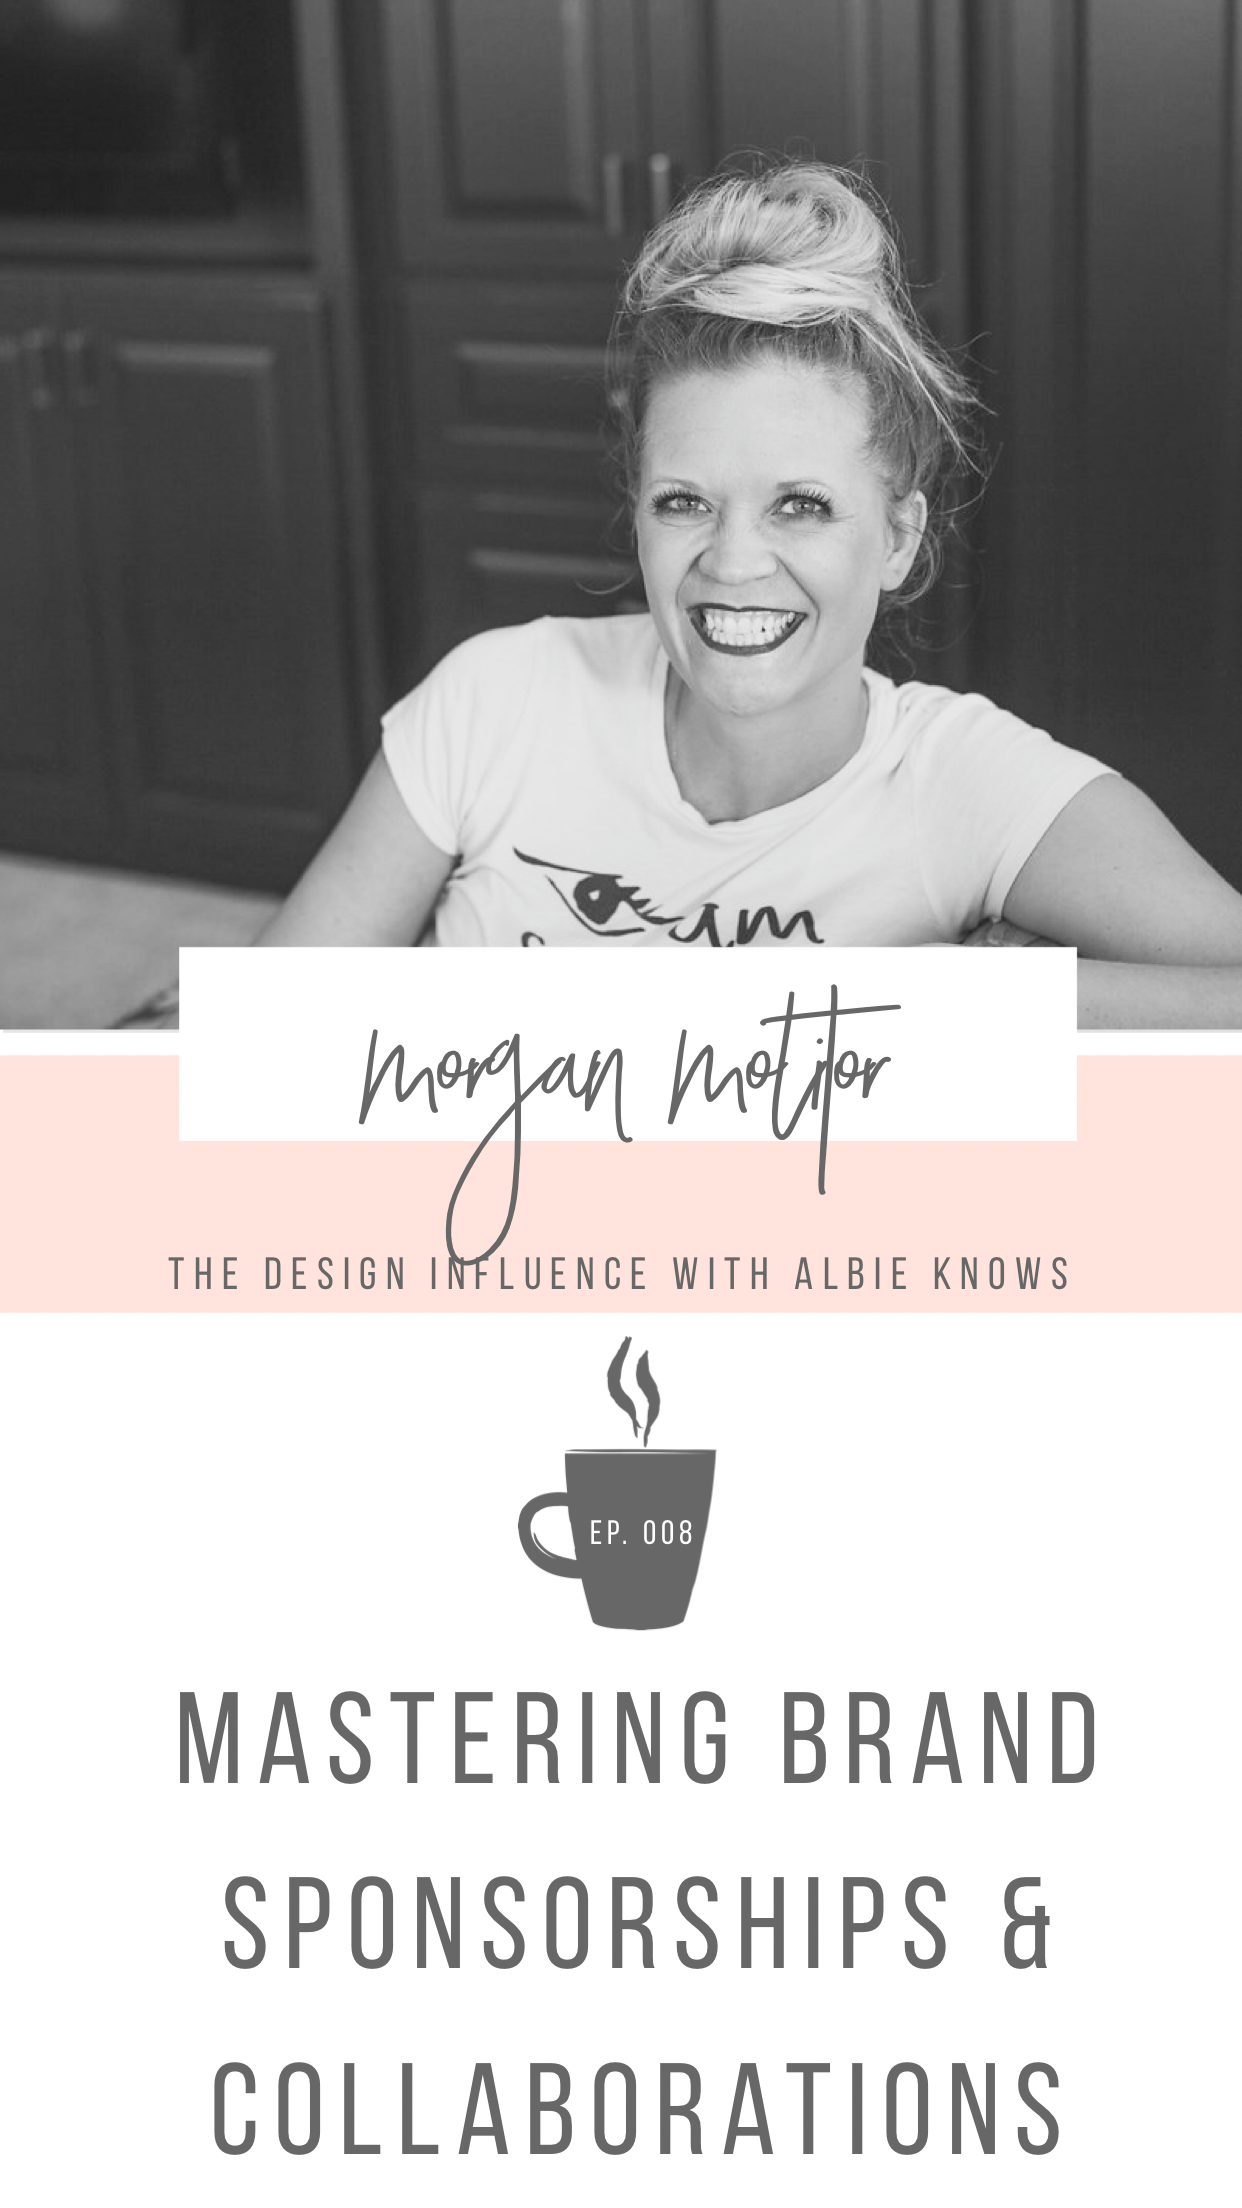 Episode 008: Mastering Brand Sponsorships & Collaborations with Morgan Molitor